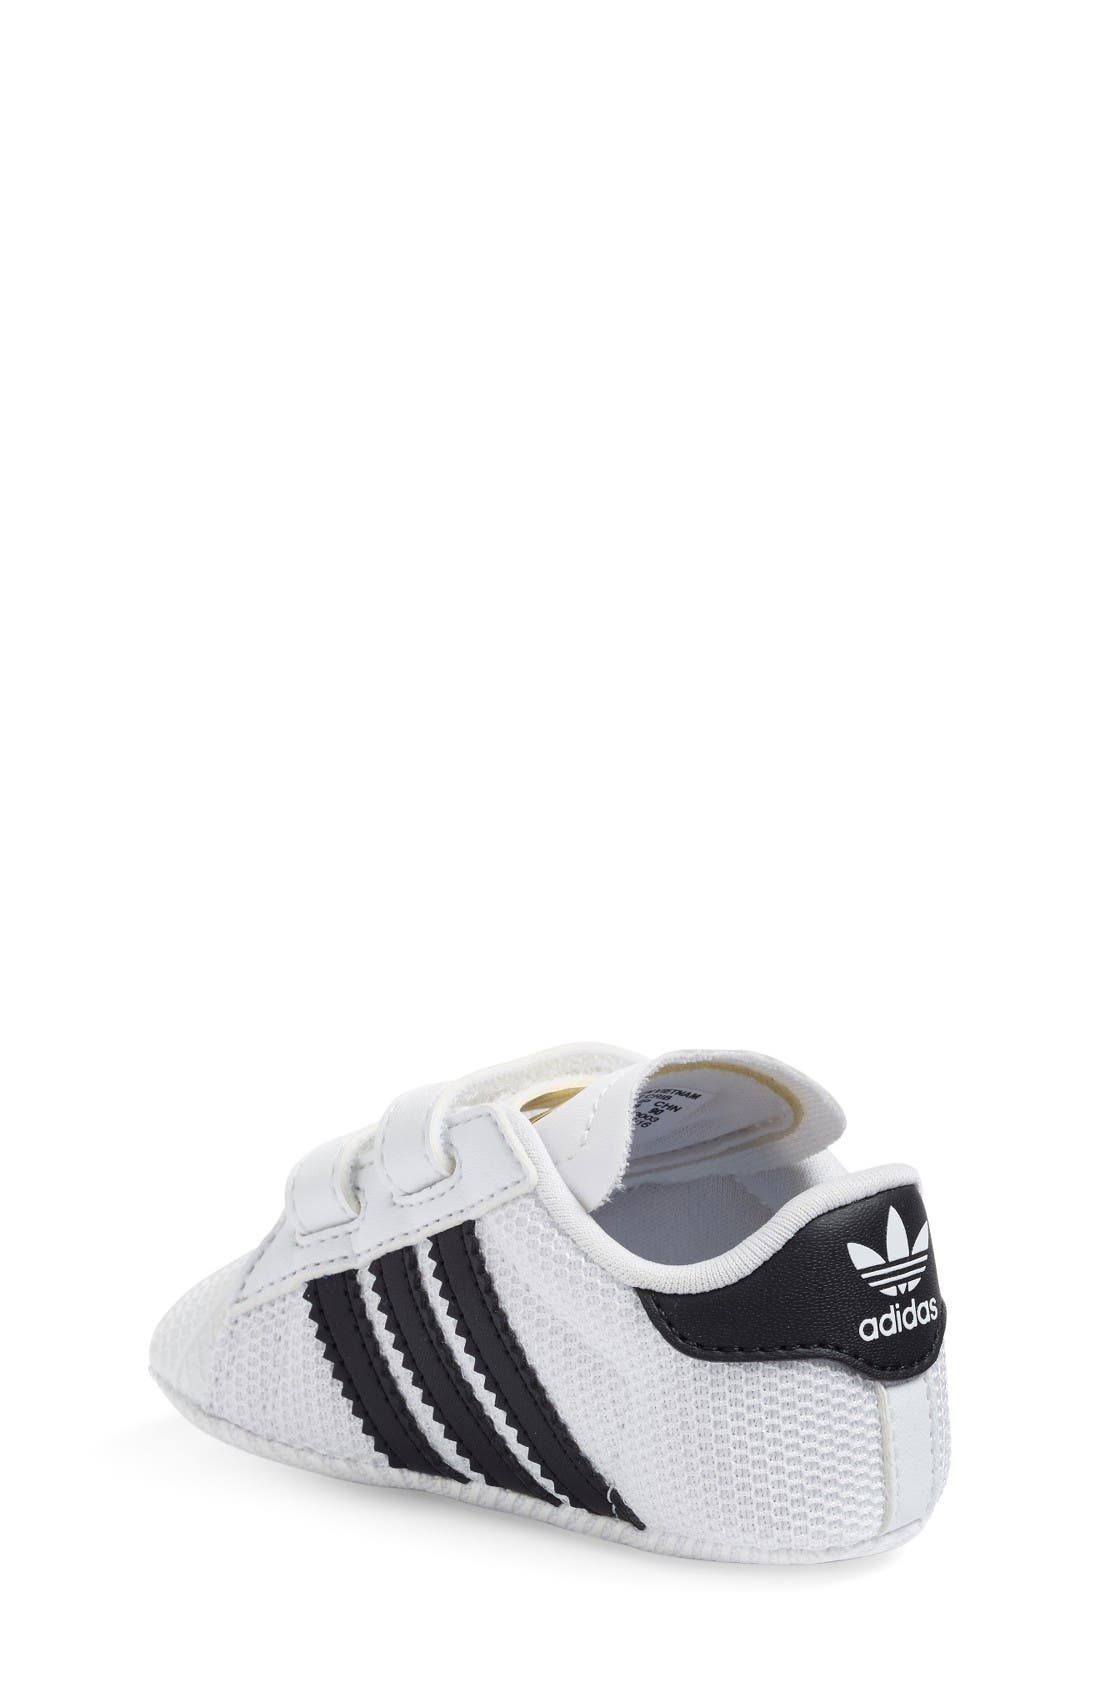 adidas superstar baby 0 3